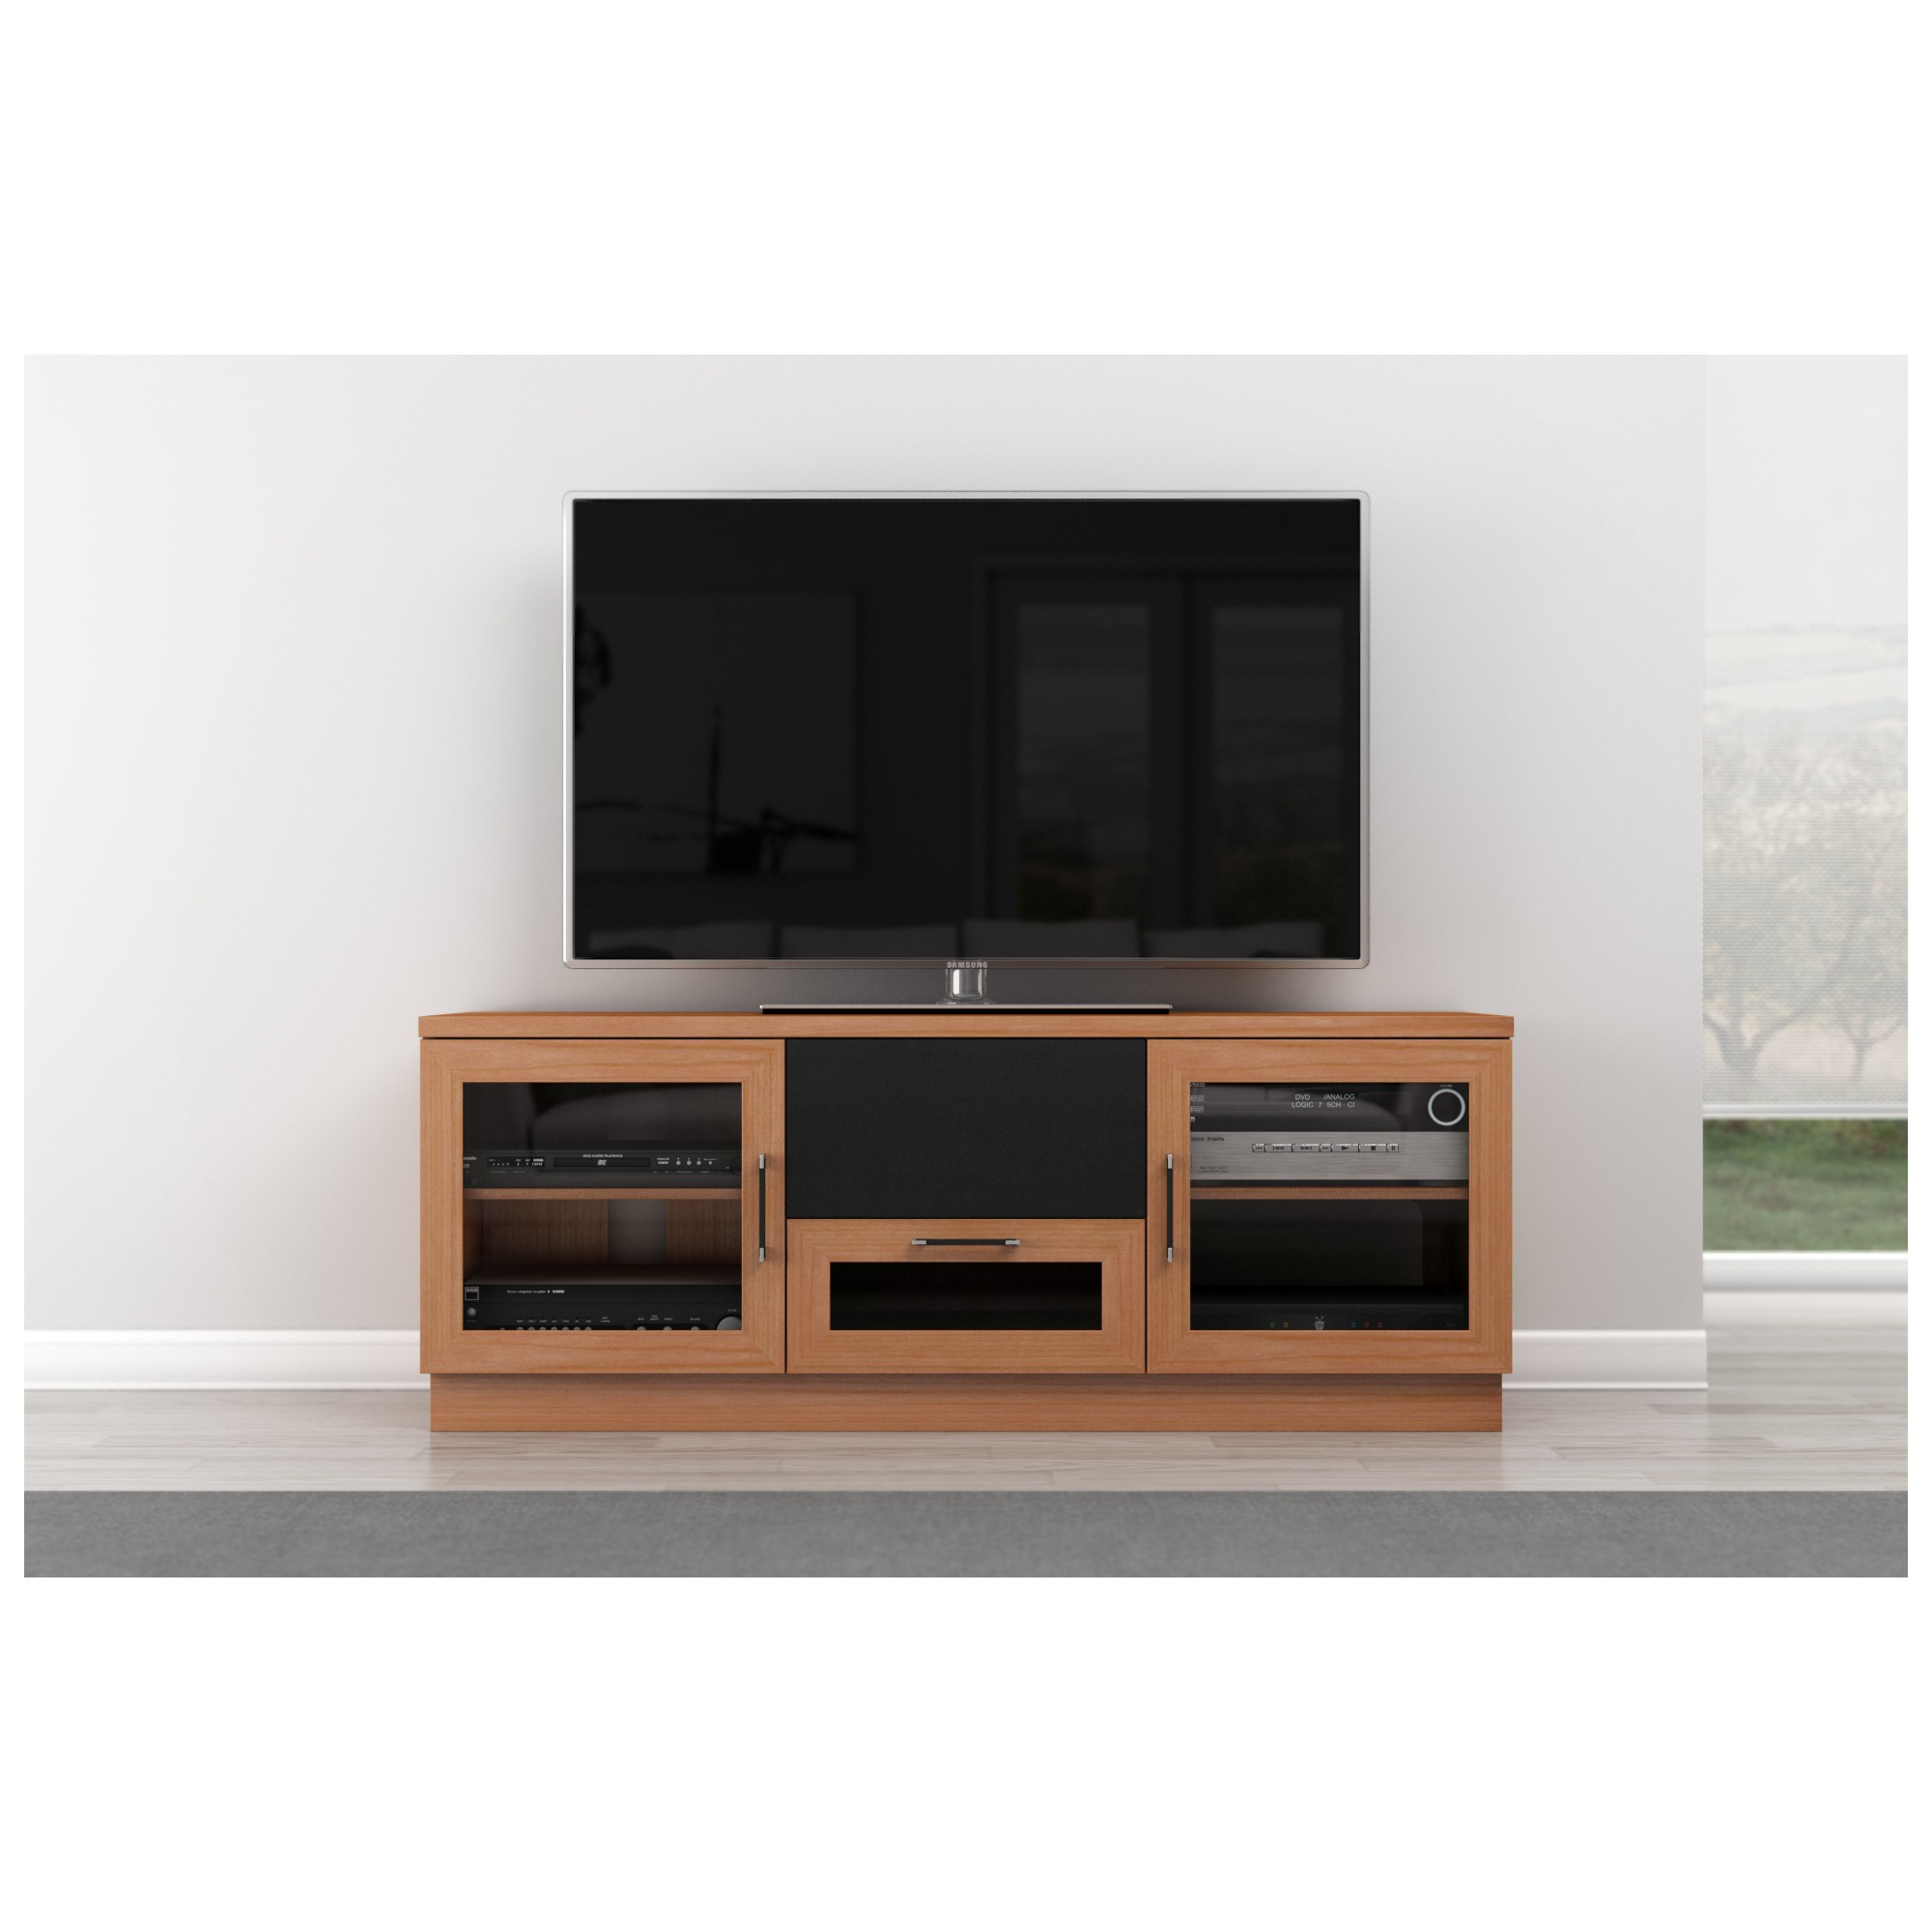 furnitech ftccnc  tv stand contemporary media cabinet w  -  tv stand contemporary media cabinet w center speaker opening innatural cherry